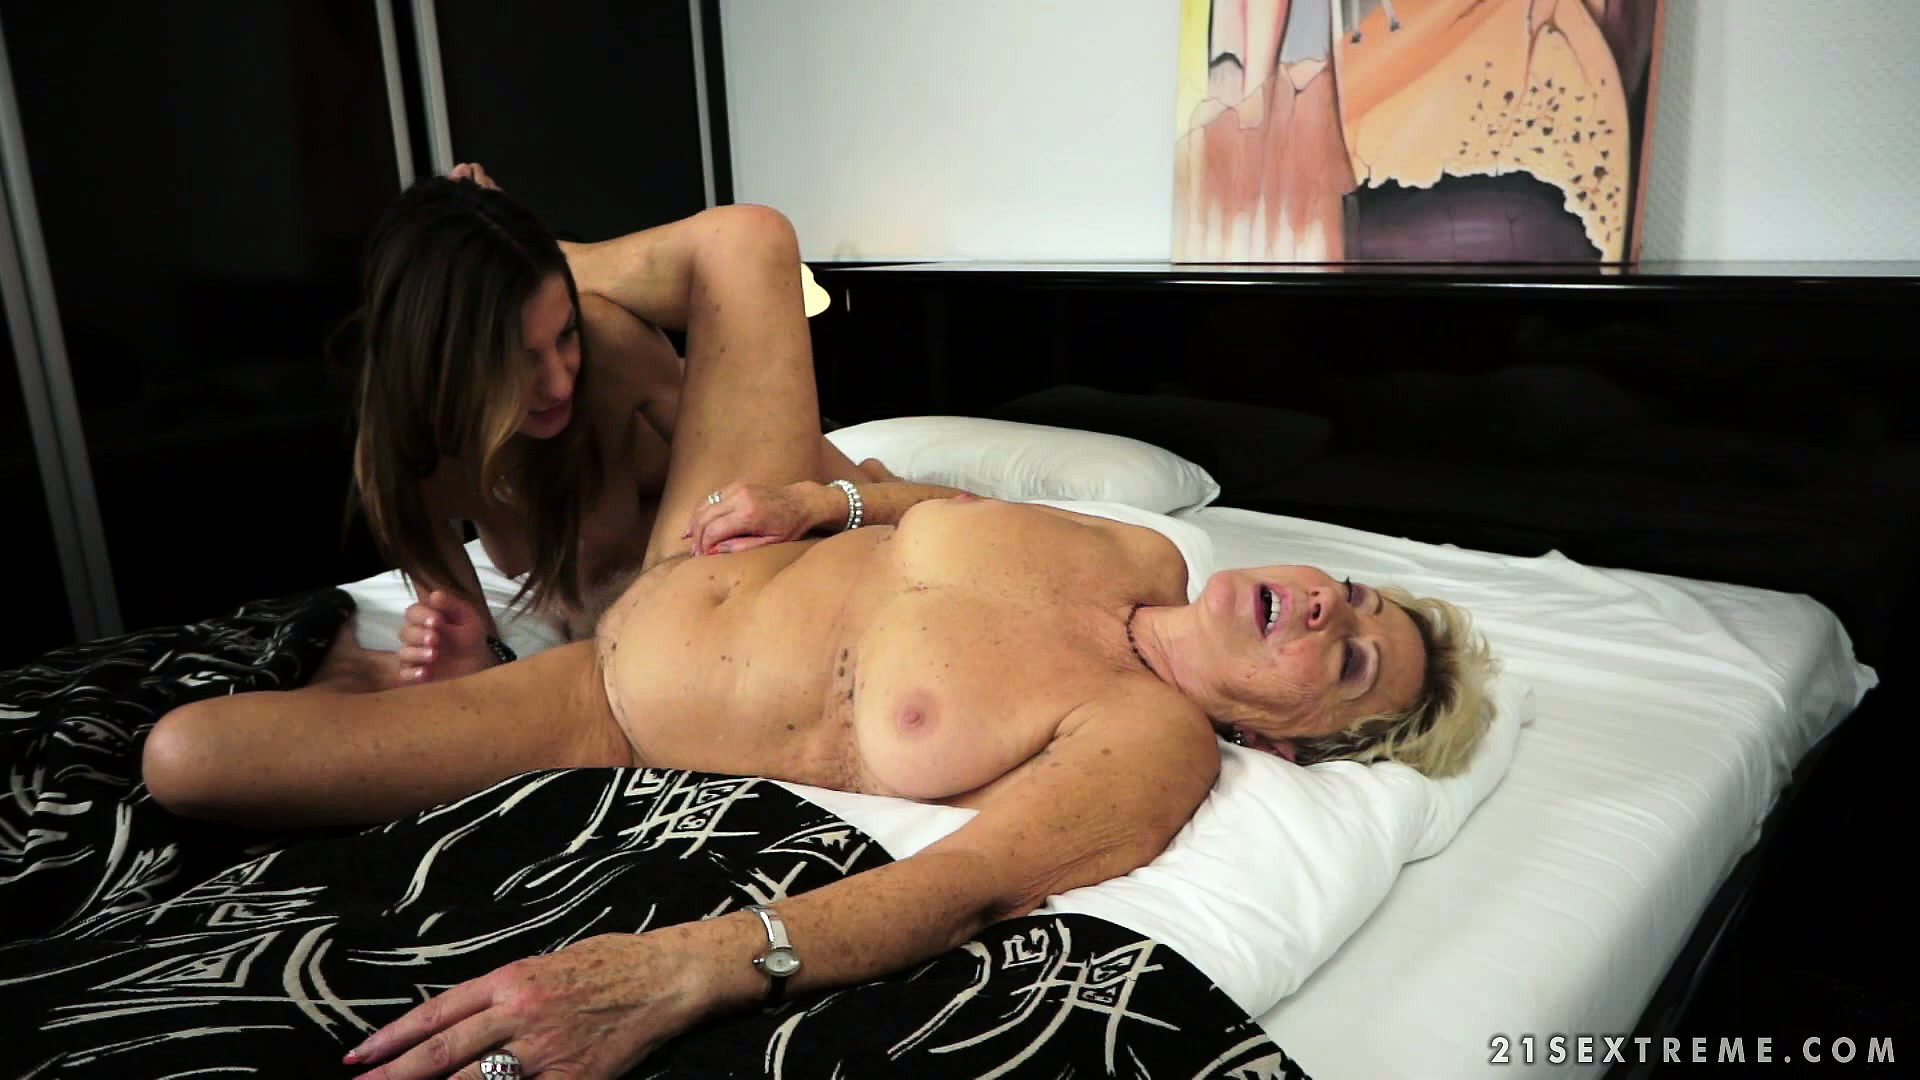 Porn Tube of Plumper Blonde Granny Introduces Her Granddaughter To Her Fat, Wet Snatch